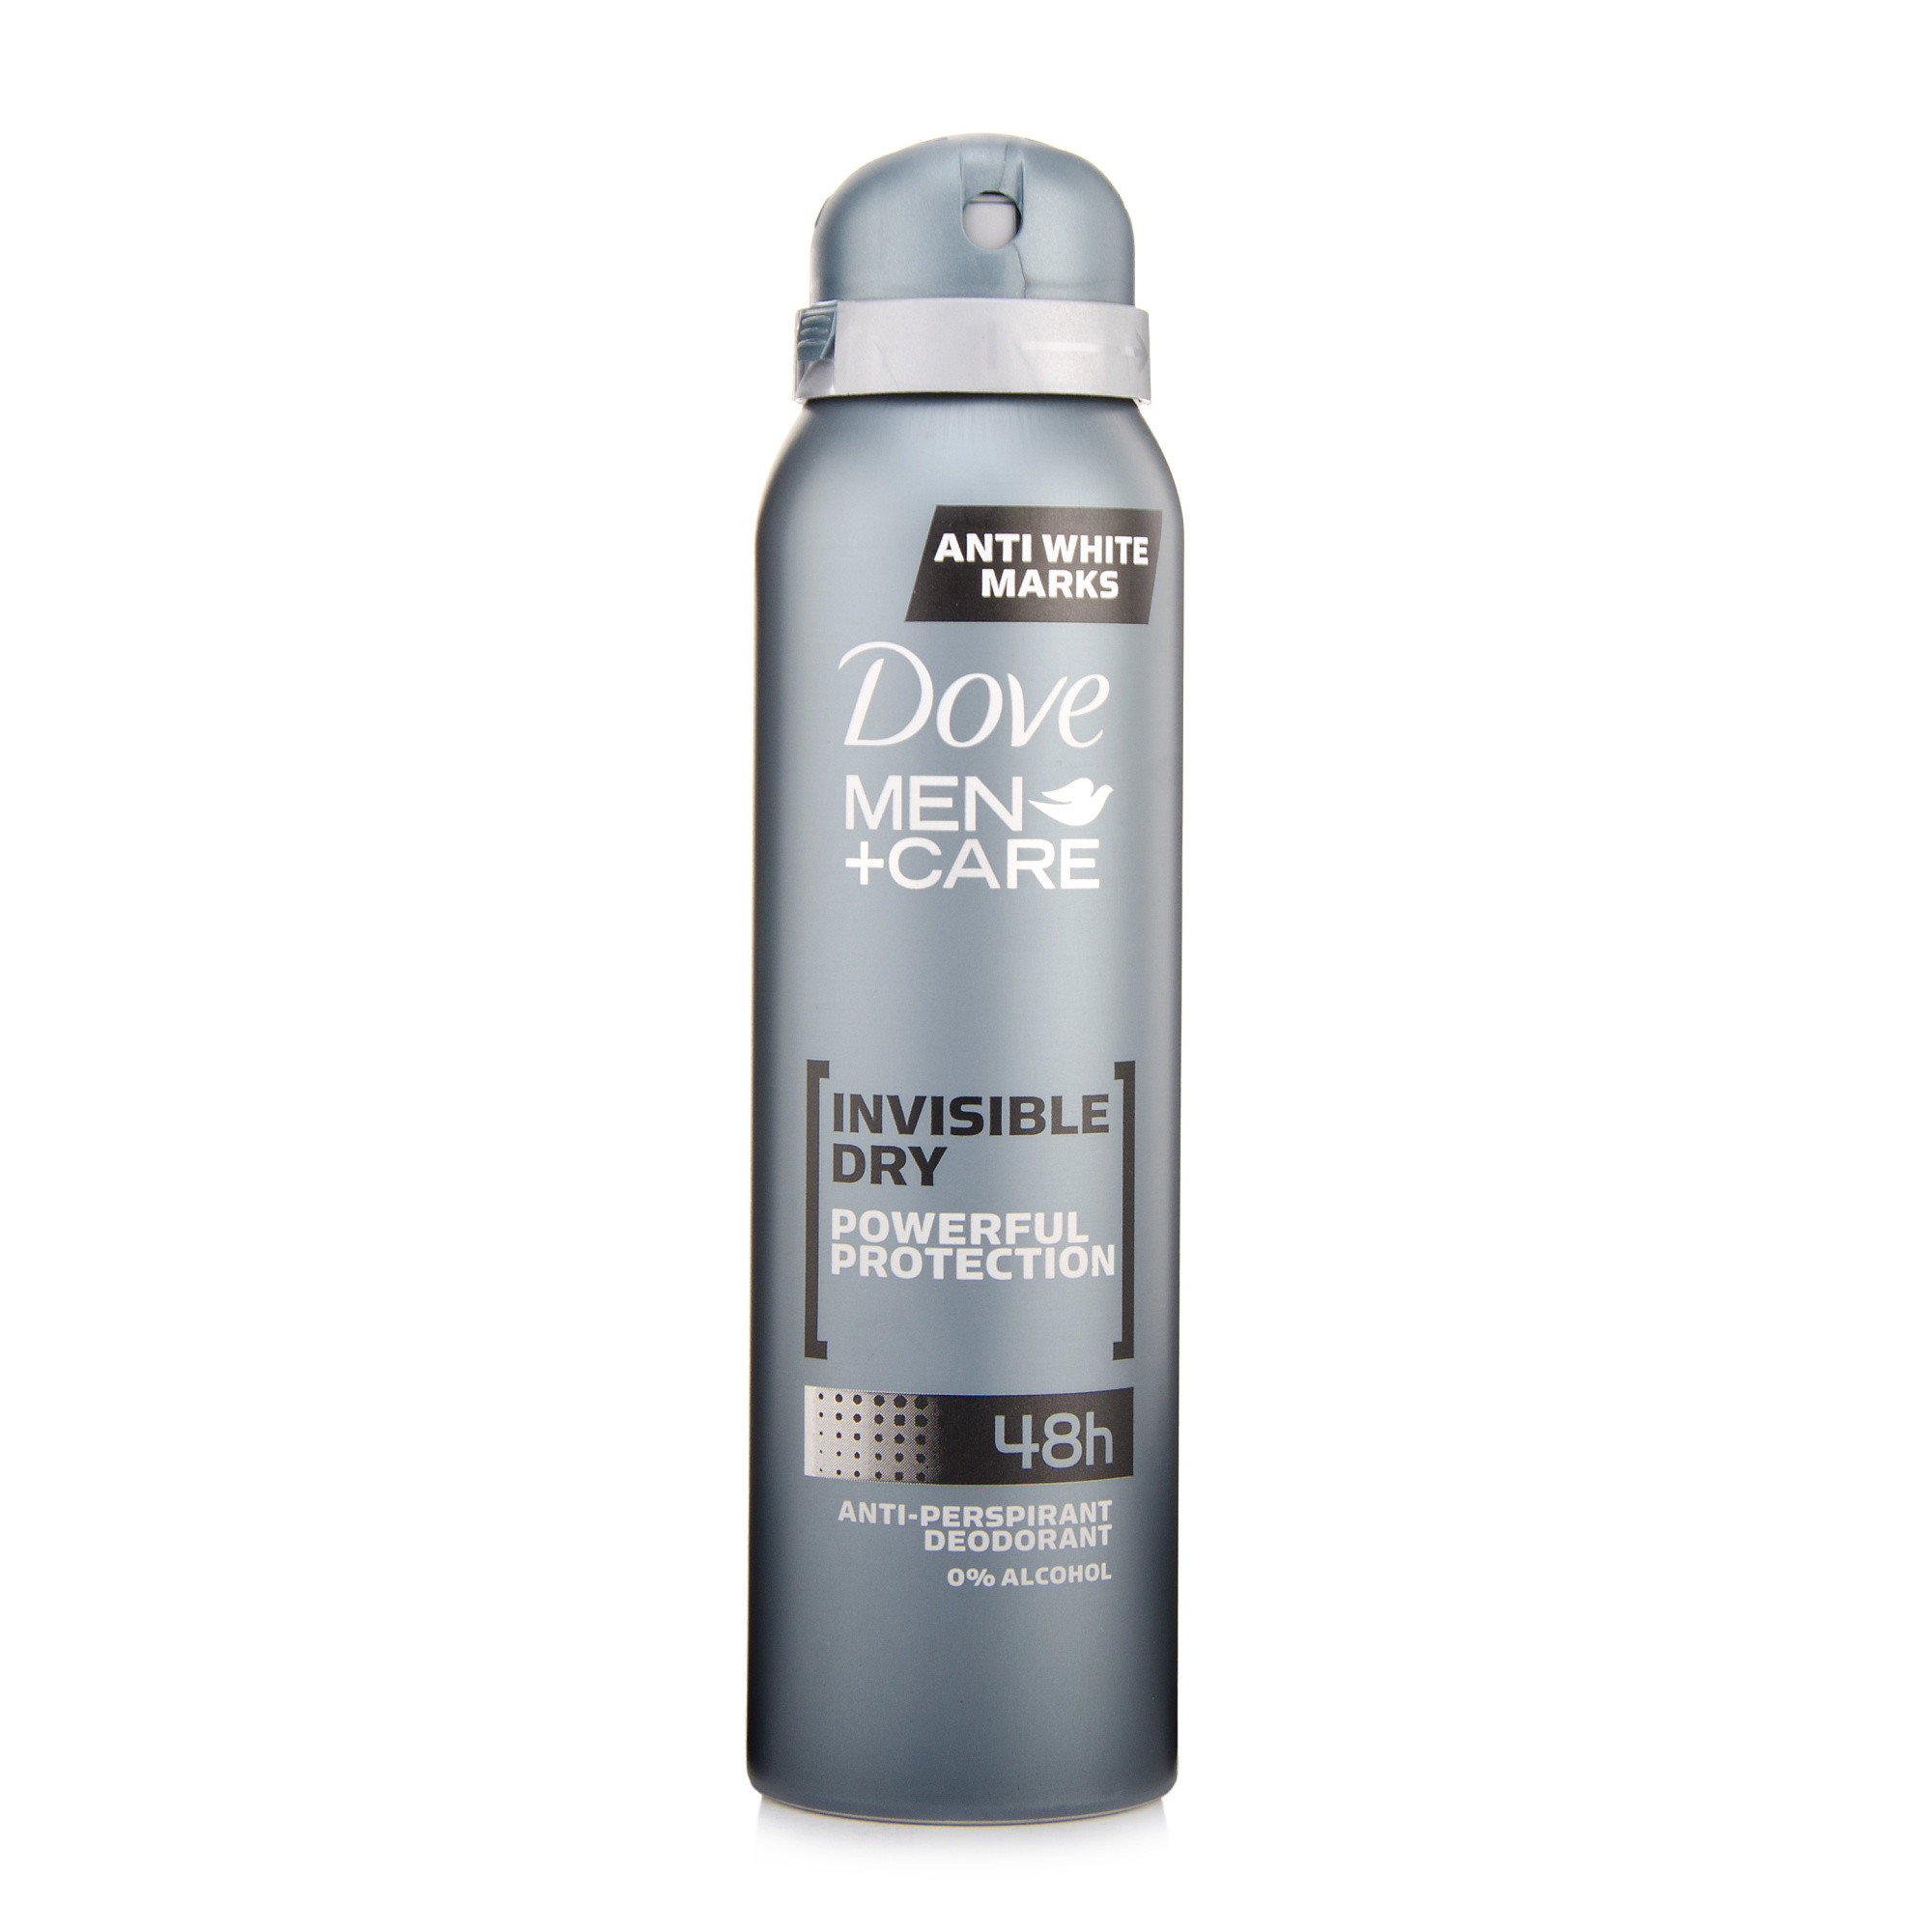 Dove Men+Care Invisible Dry Anti-Perspirant Deodorant Spray